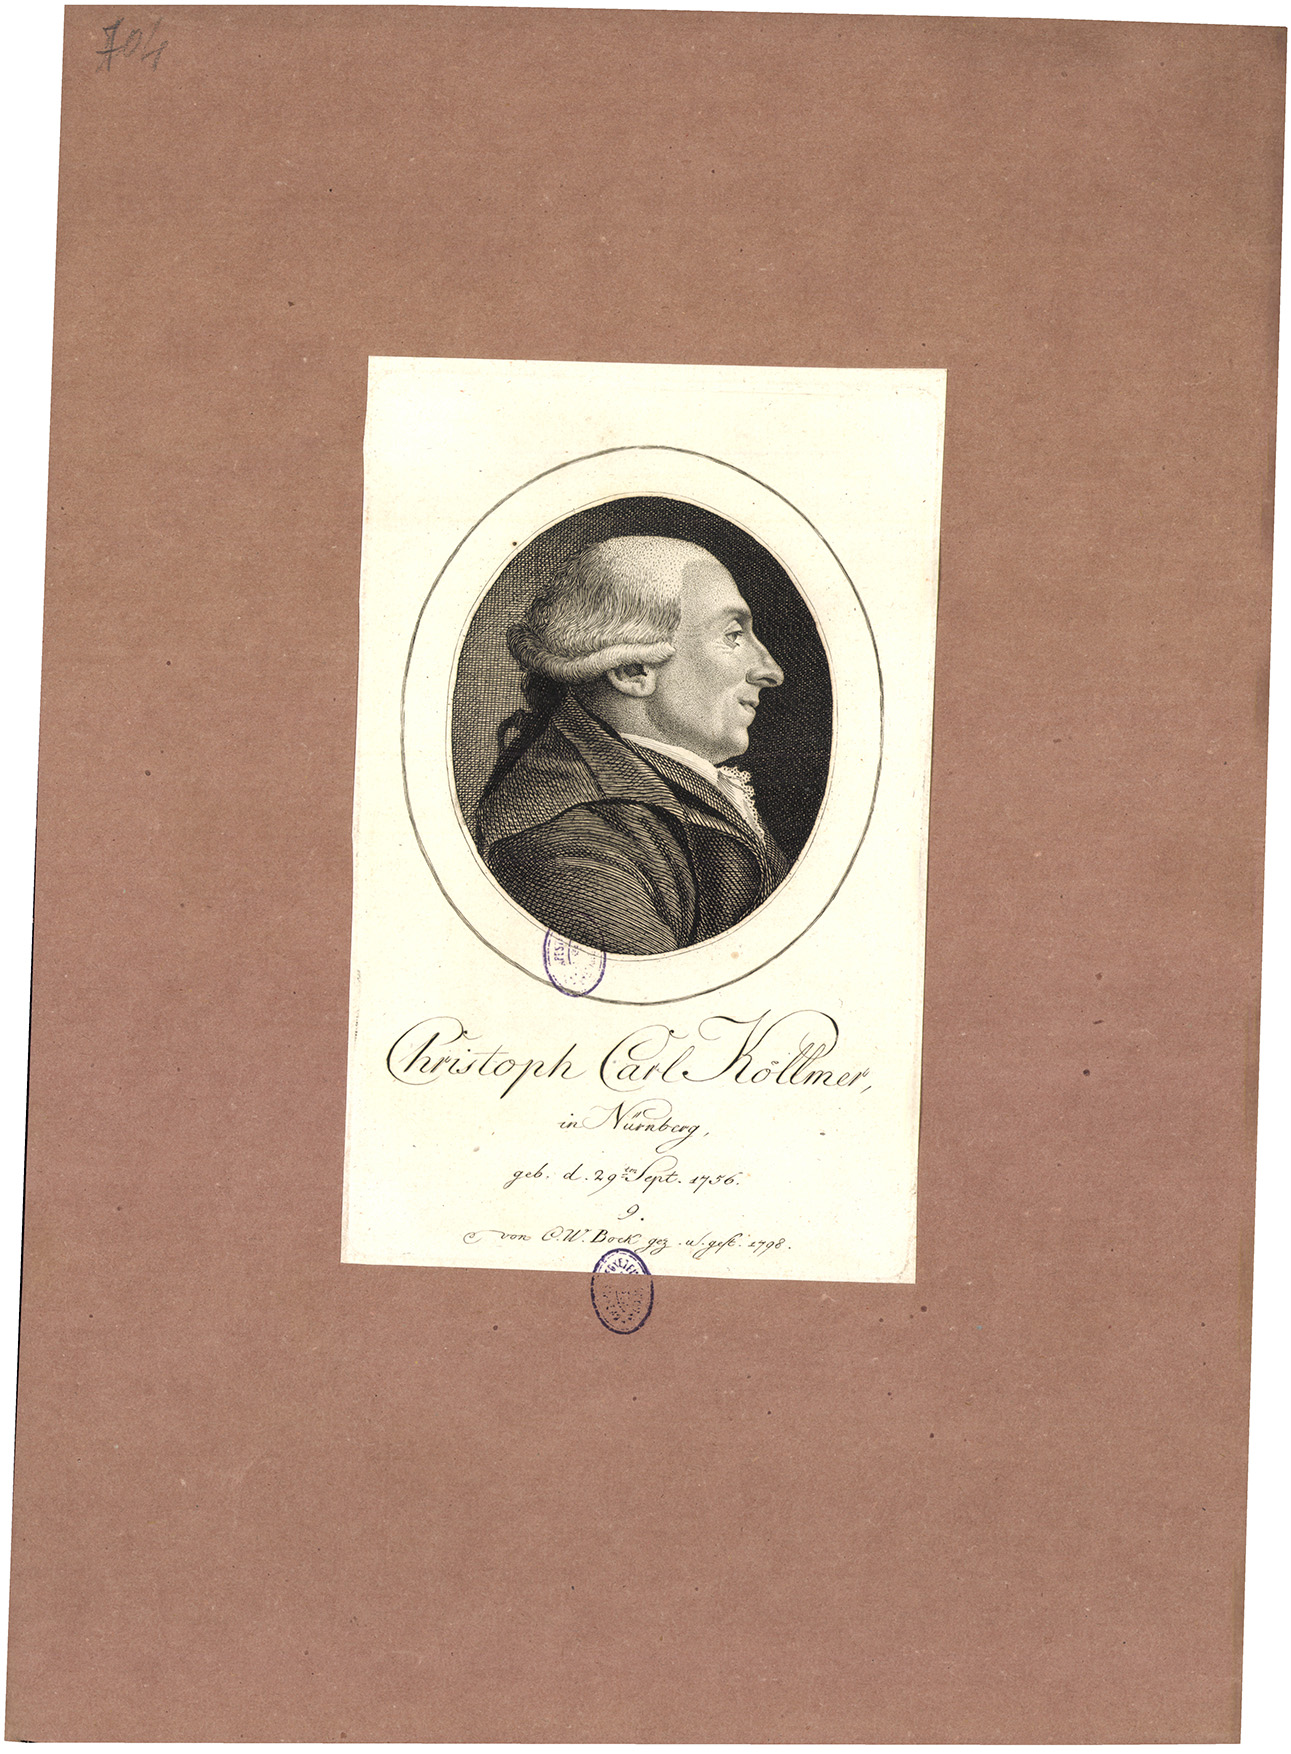 Christoph Carl Köllmer in Nürnberg, geb. d. 29ten Sept. 1756.